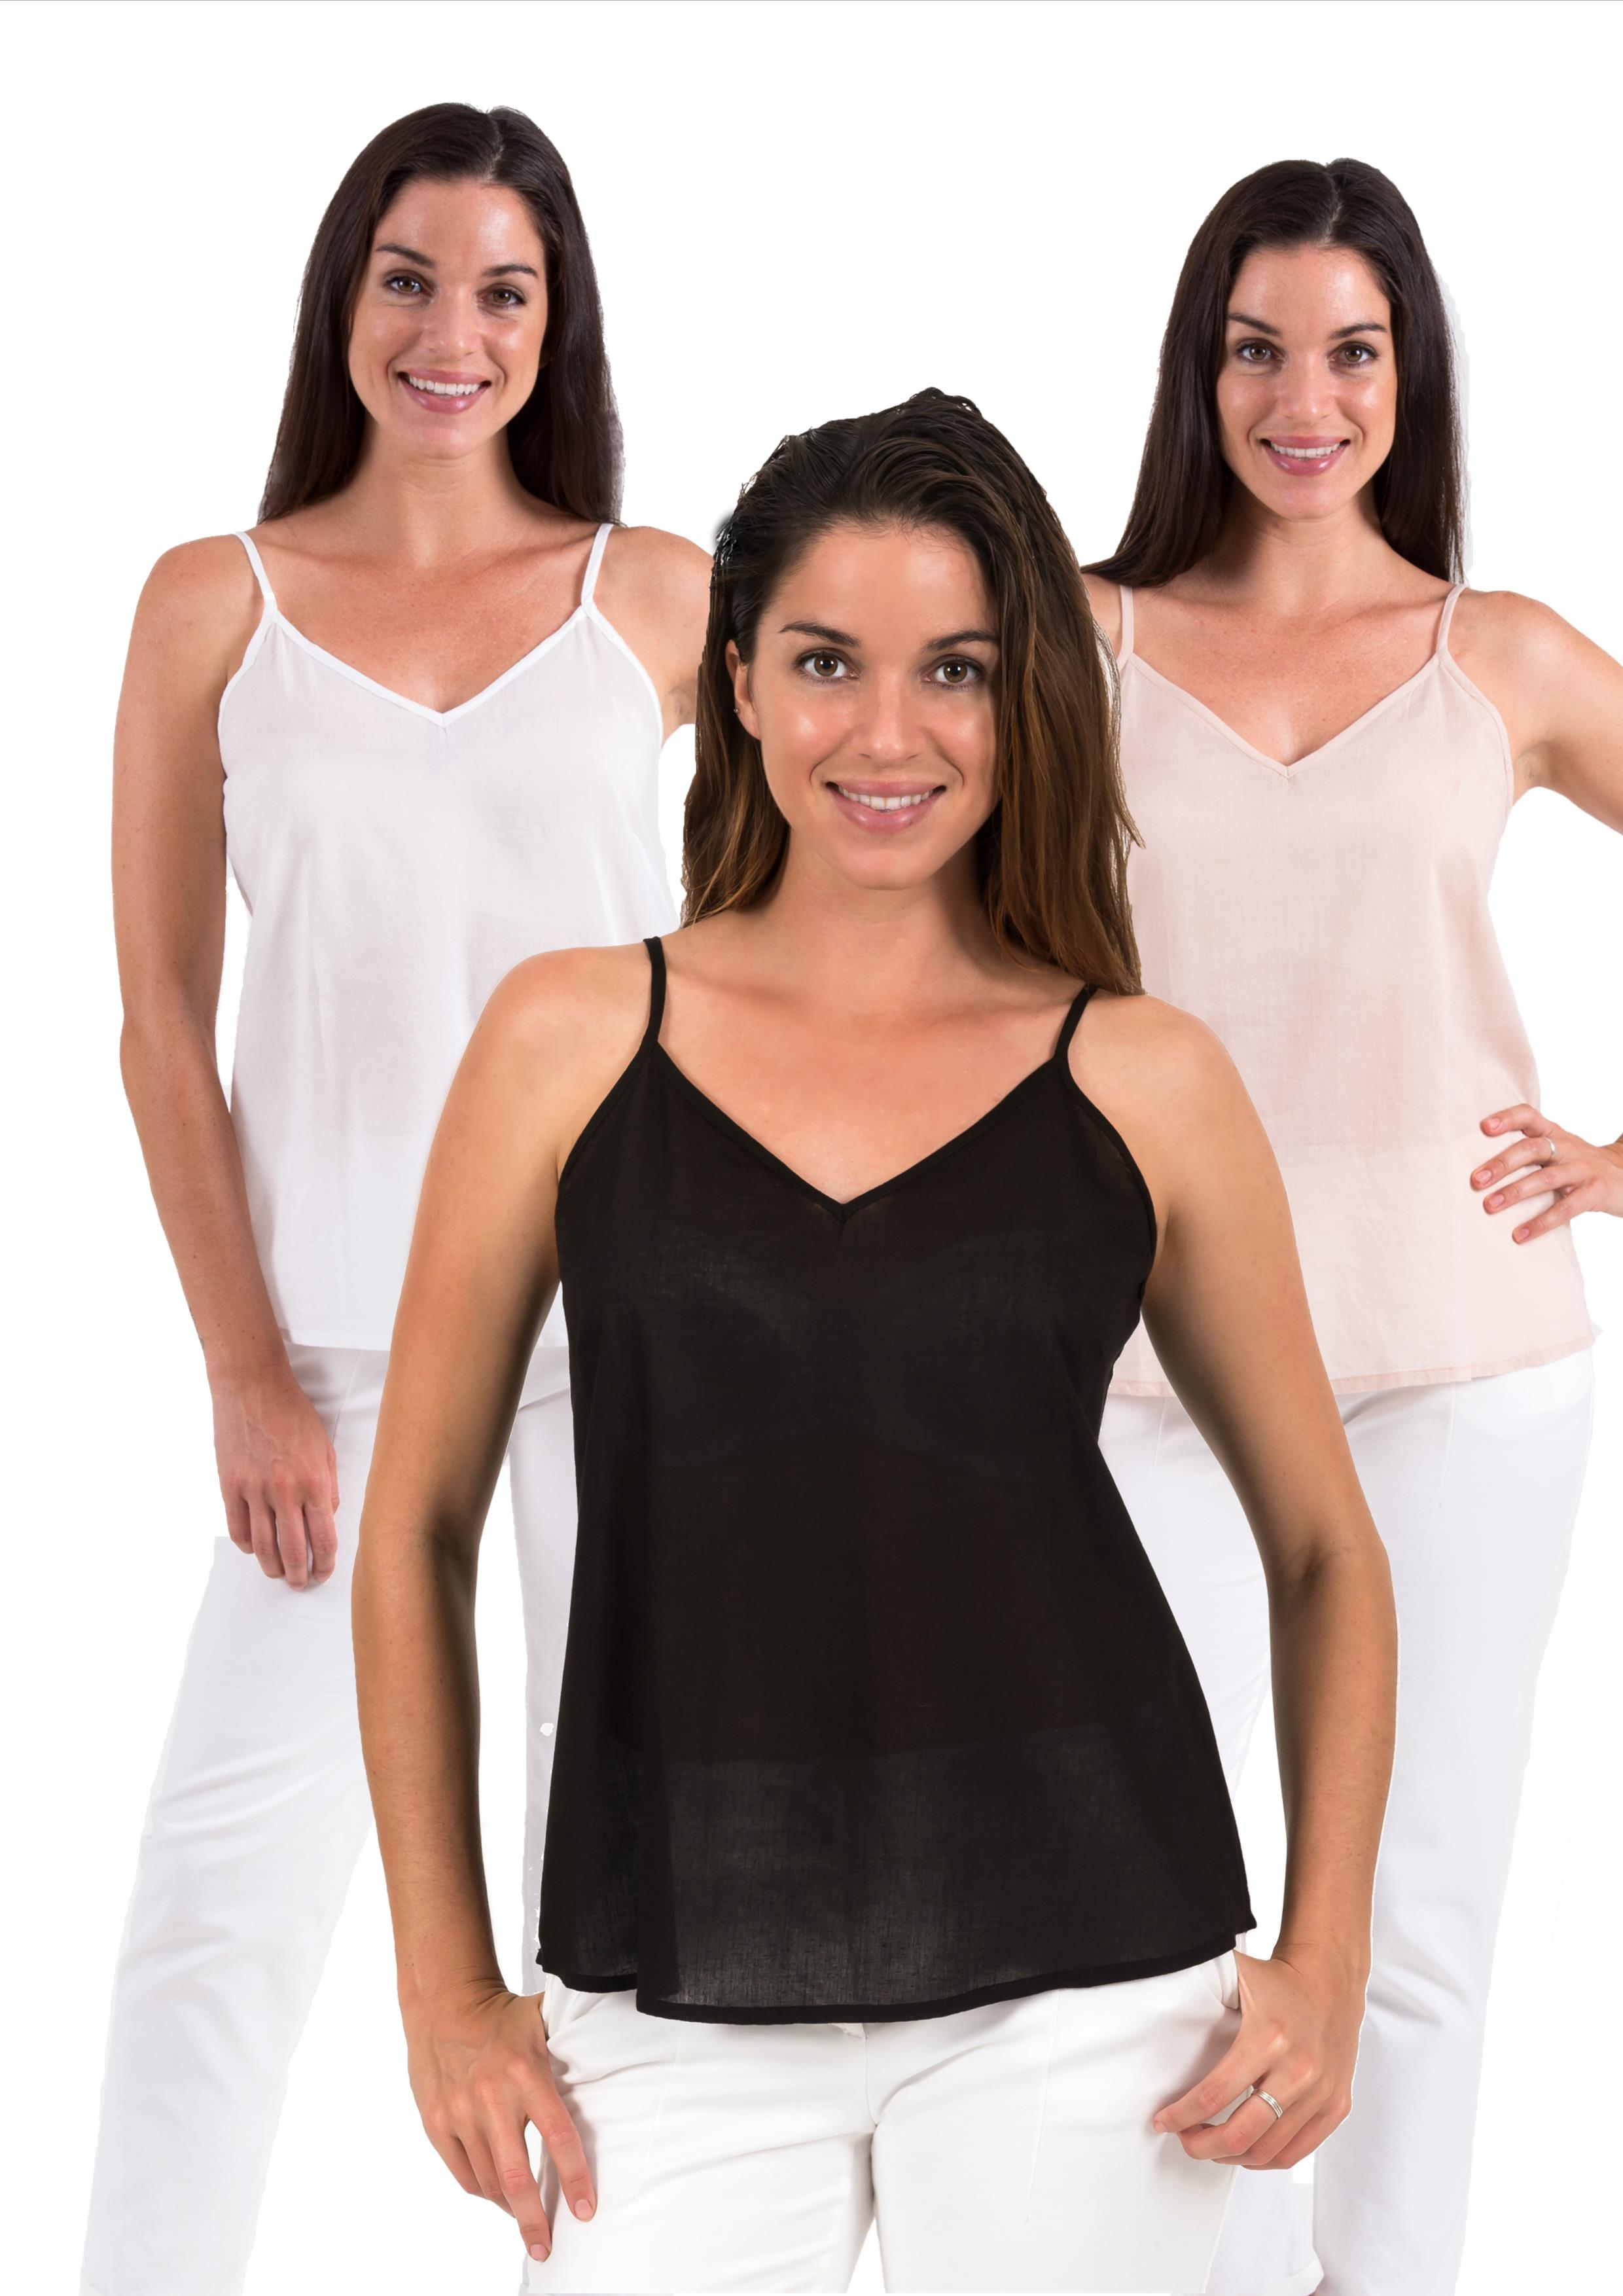 Cotton Camisole's and women's dress slips